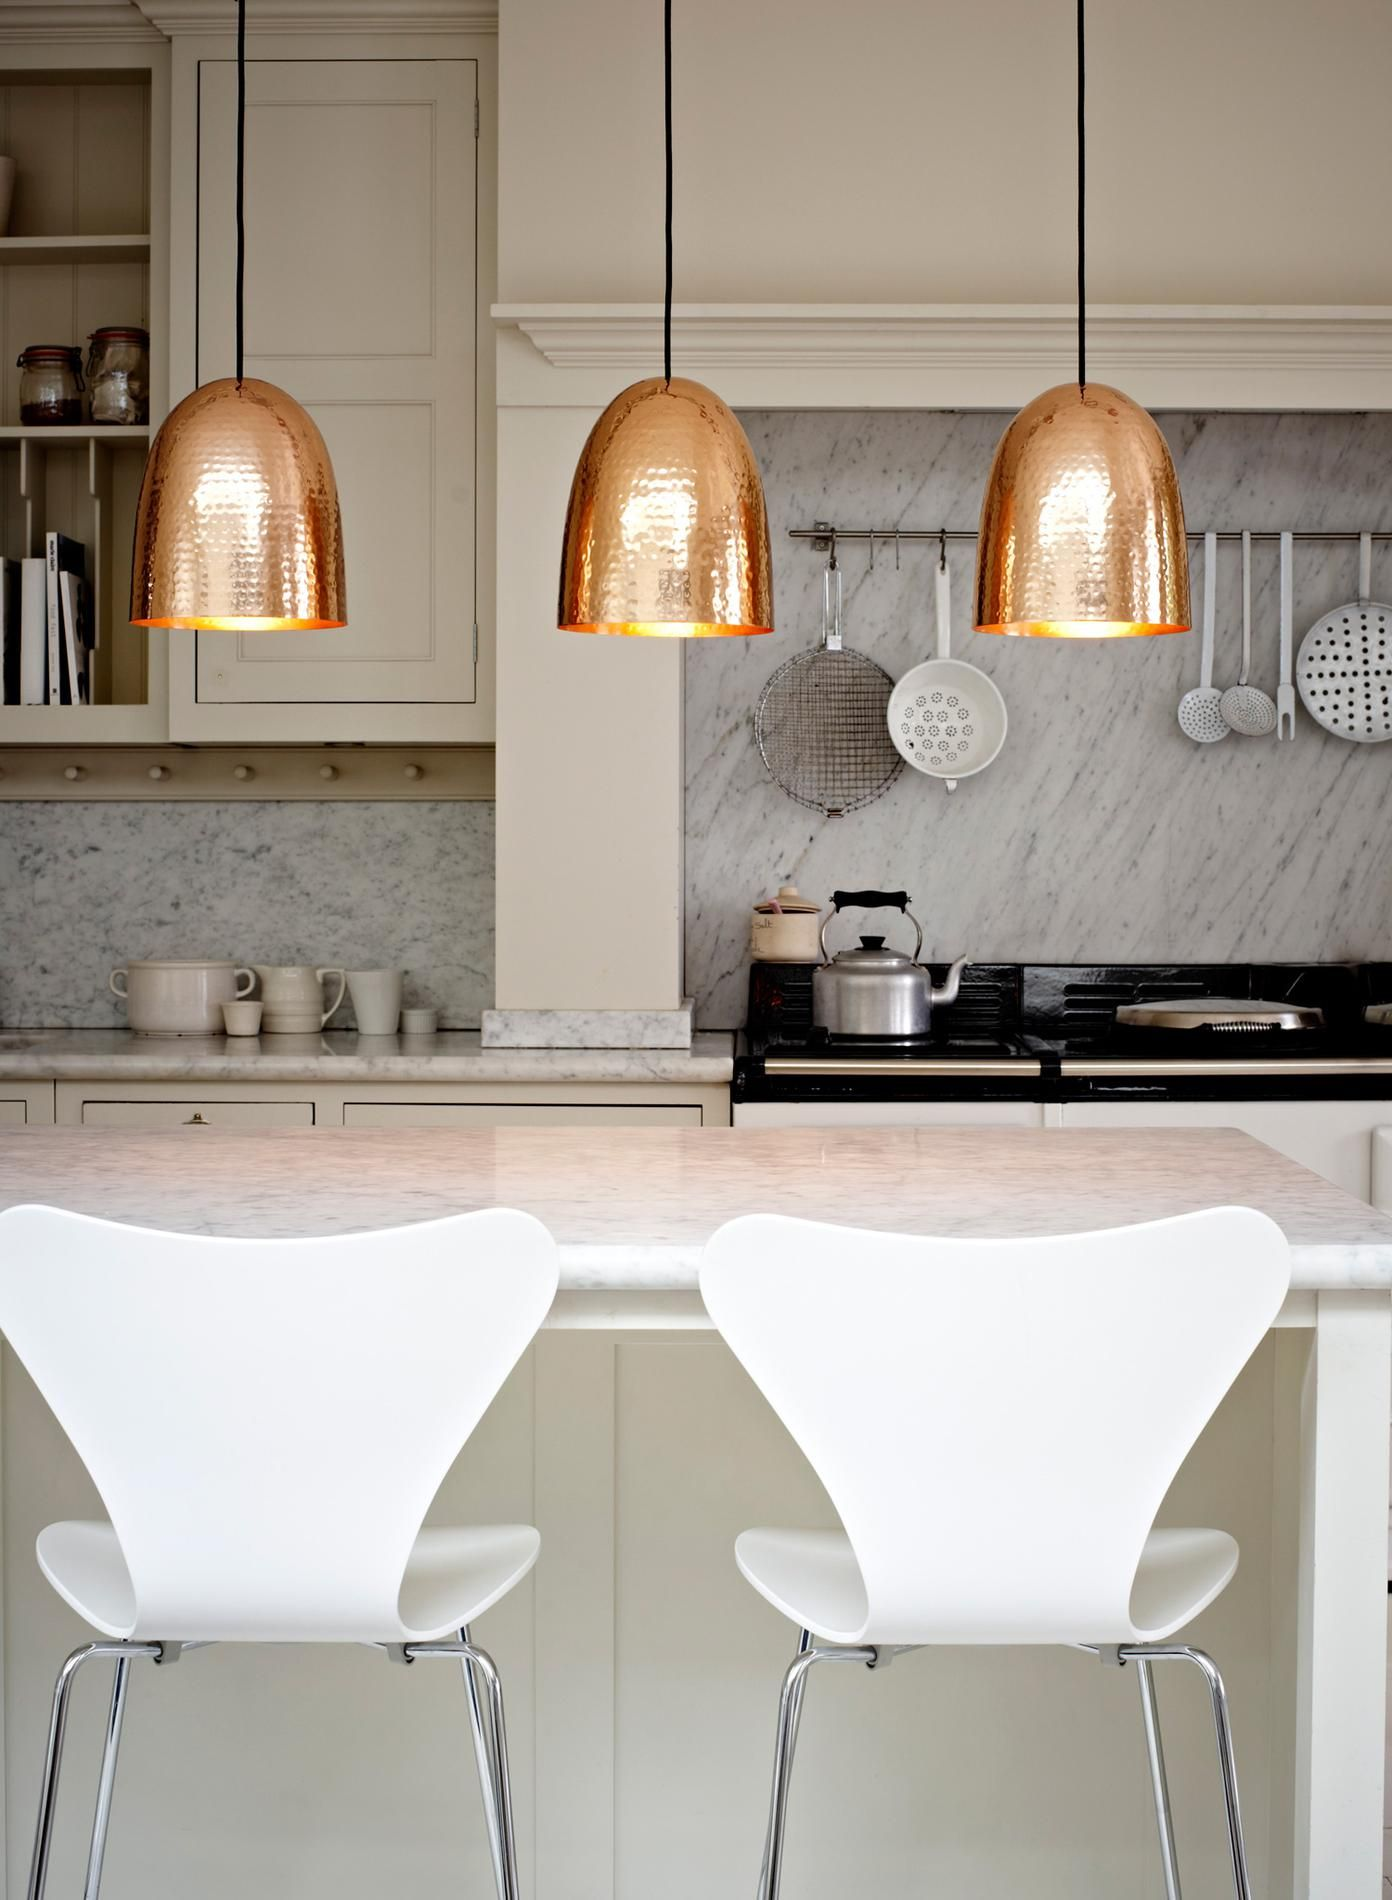 Copper Hammered Trio Pendant Lights & 20 Examples of Copper Pendant Lighting For Your Home